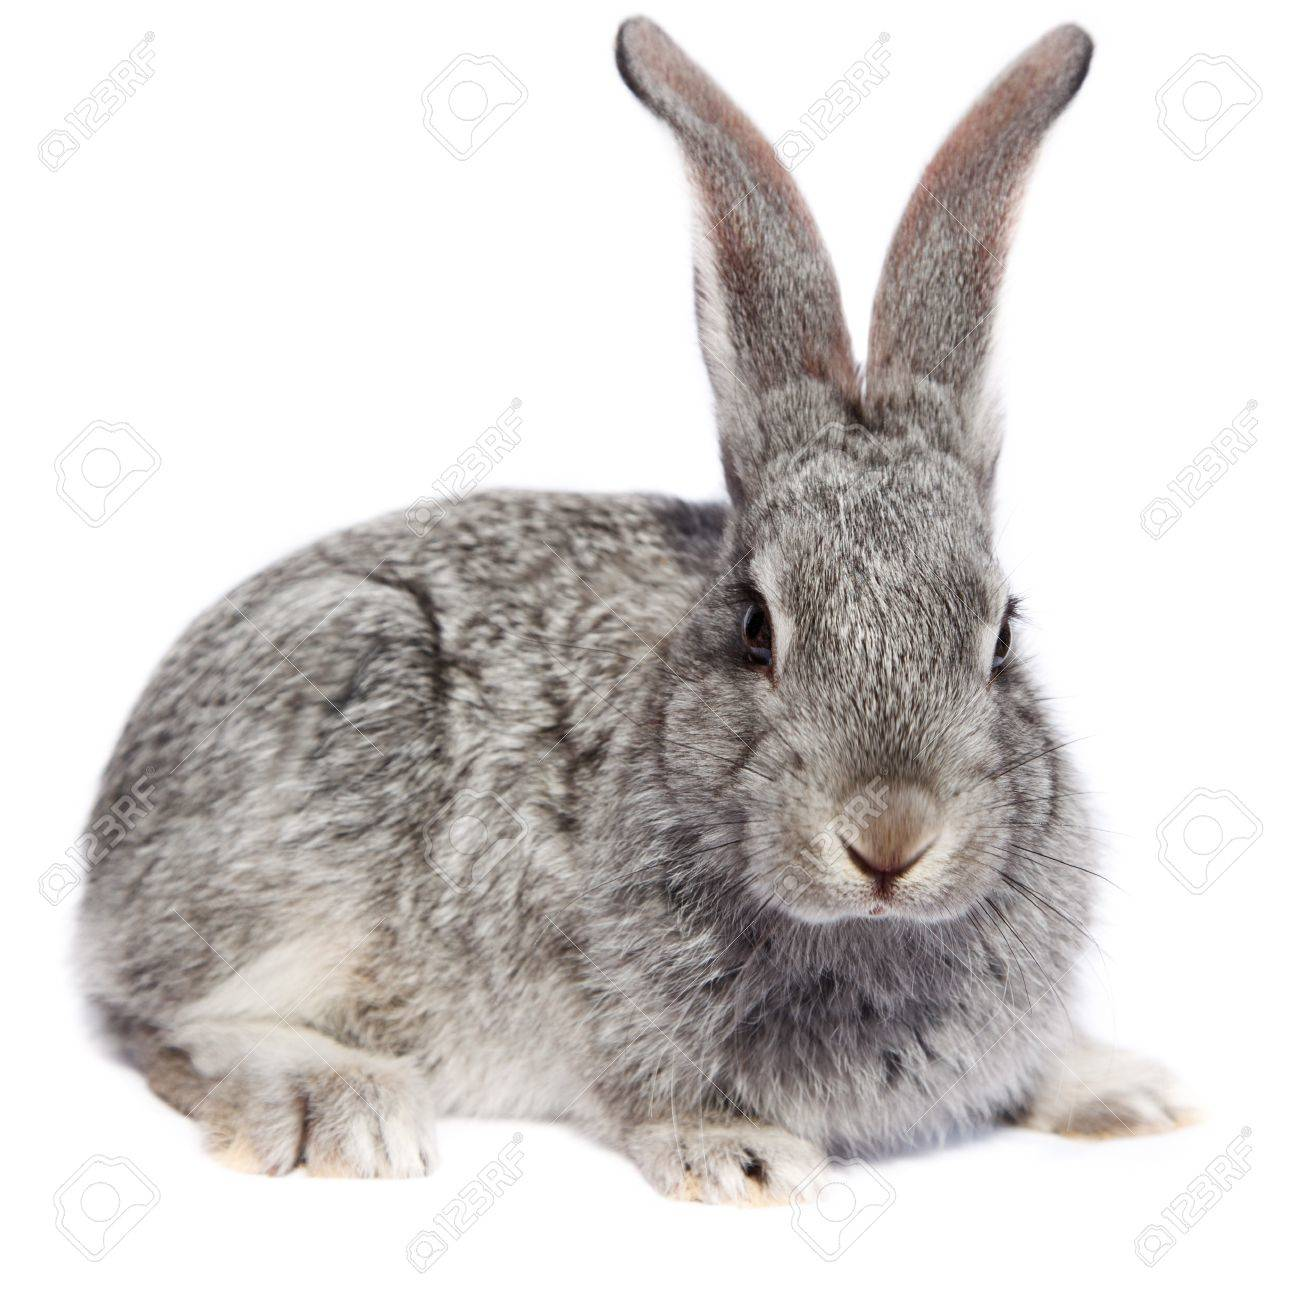 Rabbit in studio against a white background. Stock Photo - 7411059